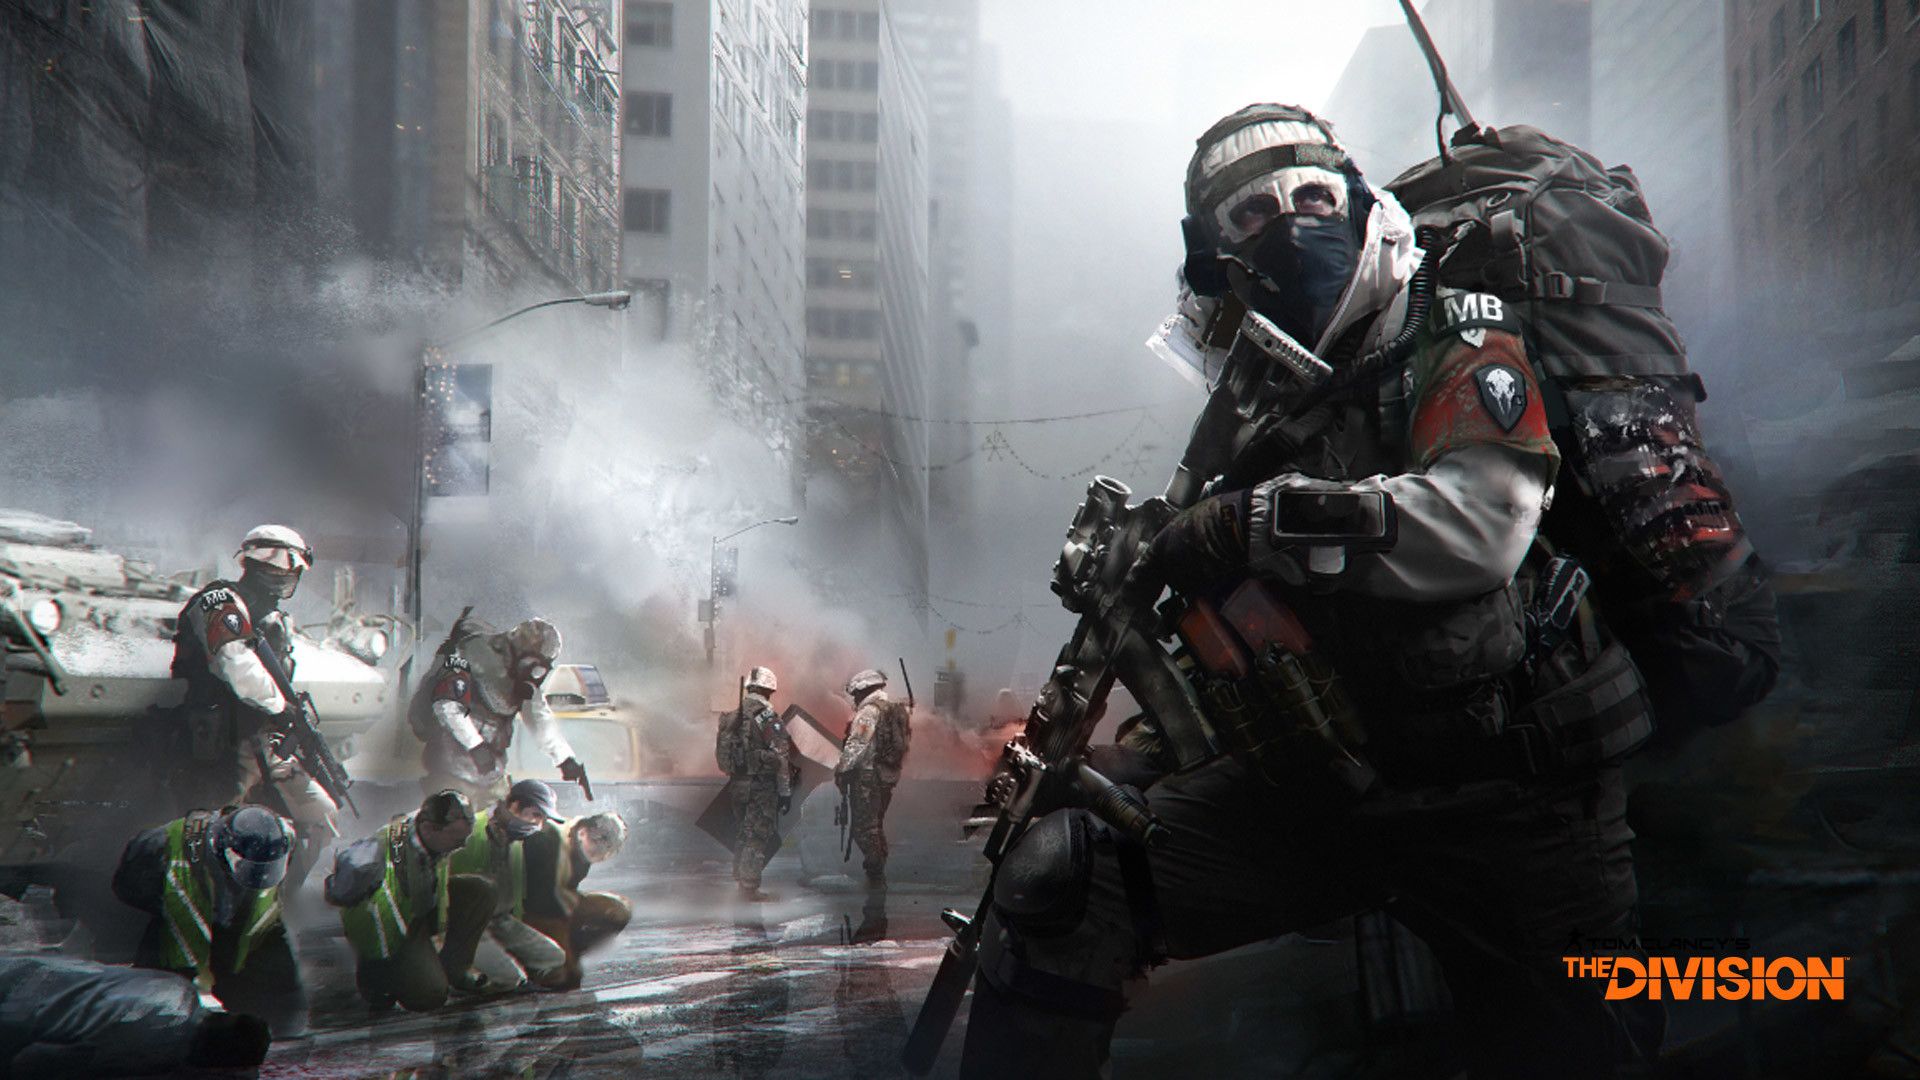 Free The Division Wallpaper in 1920×1080